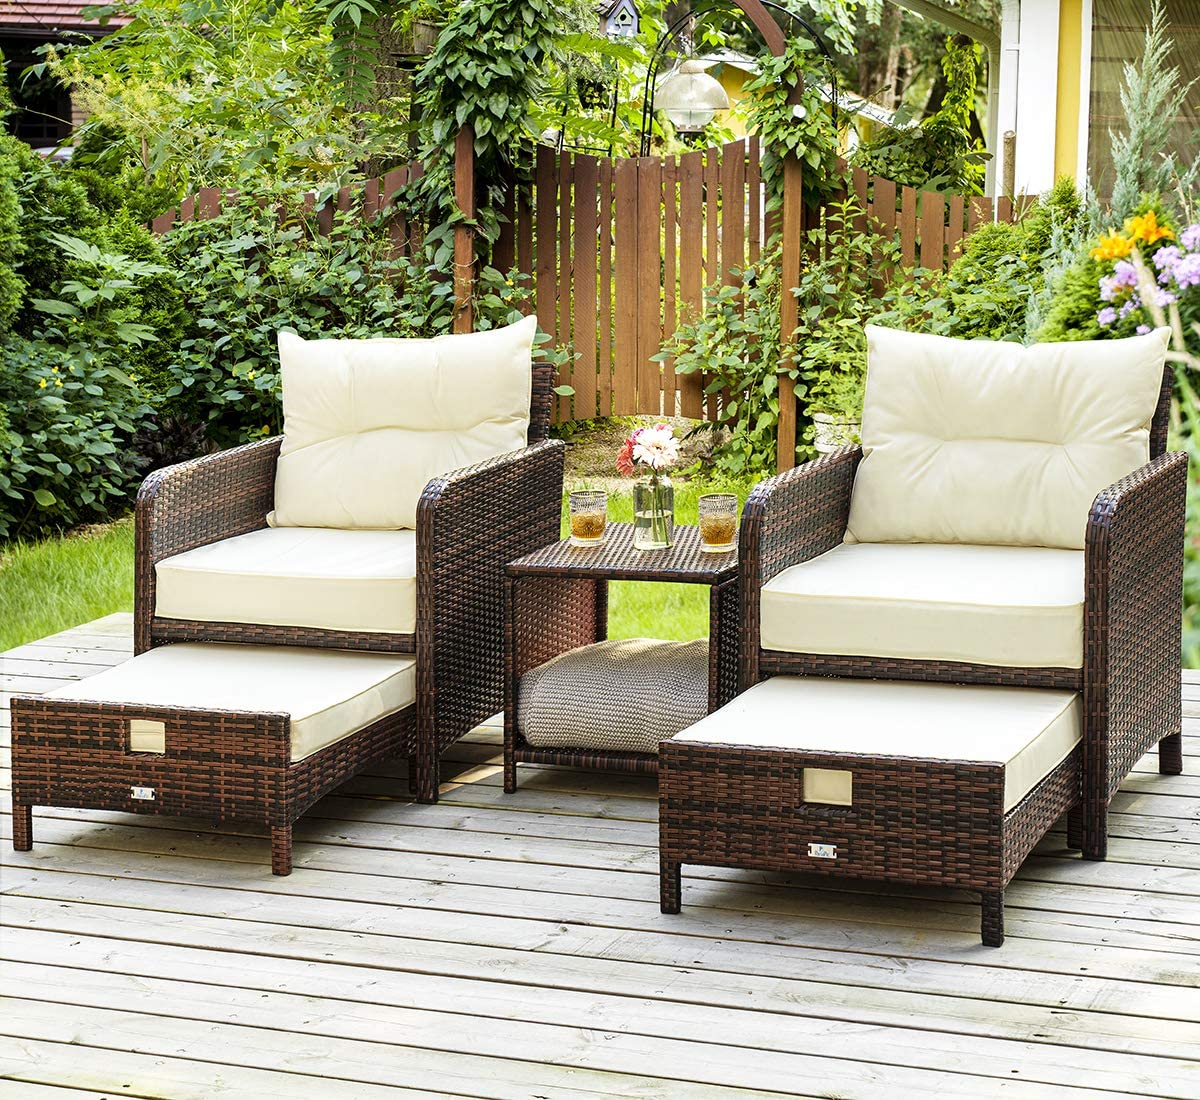 PAMAPIC 5 Pieces Wicker Patio Furniture Set Outdoor Patio Chairs